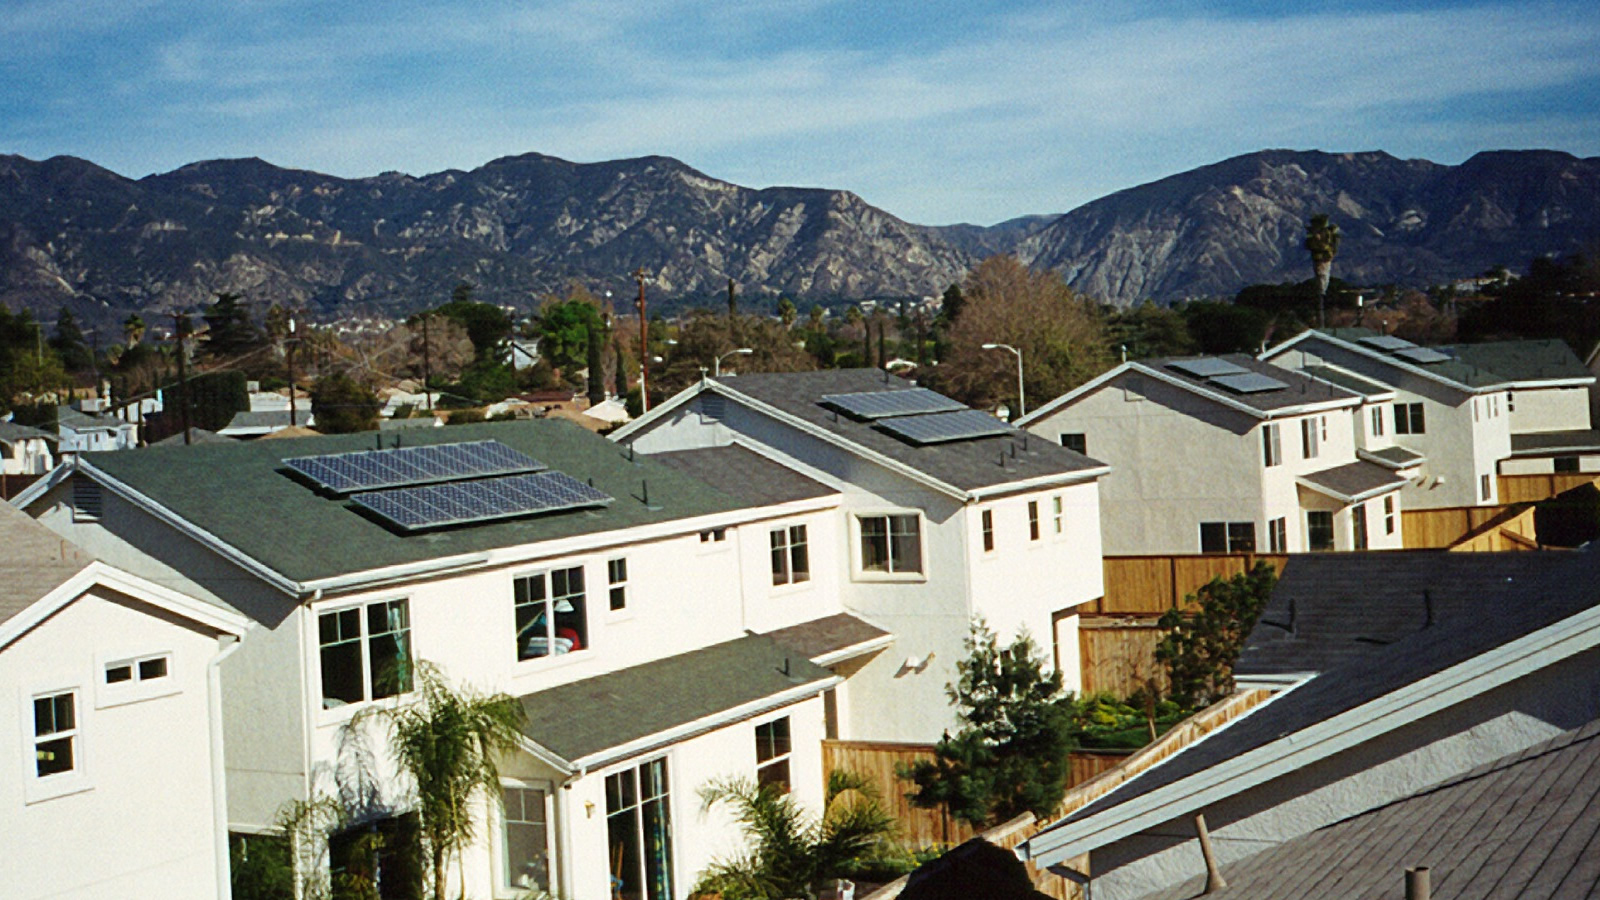 "<h4>Shining Cities</h4> <h5>America's major cities have played a key role in the clean energy revolution and stand to reap tremendous benefits from solar energy.<br><br><a href=""https://environmentamericacenter.org/reports/ame/shining-cities-2017"" target=""_blank"">Learn more...</a></h5> <em>Village Green, California / National Renewable Energy Laboratory Photo</em>"